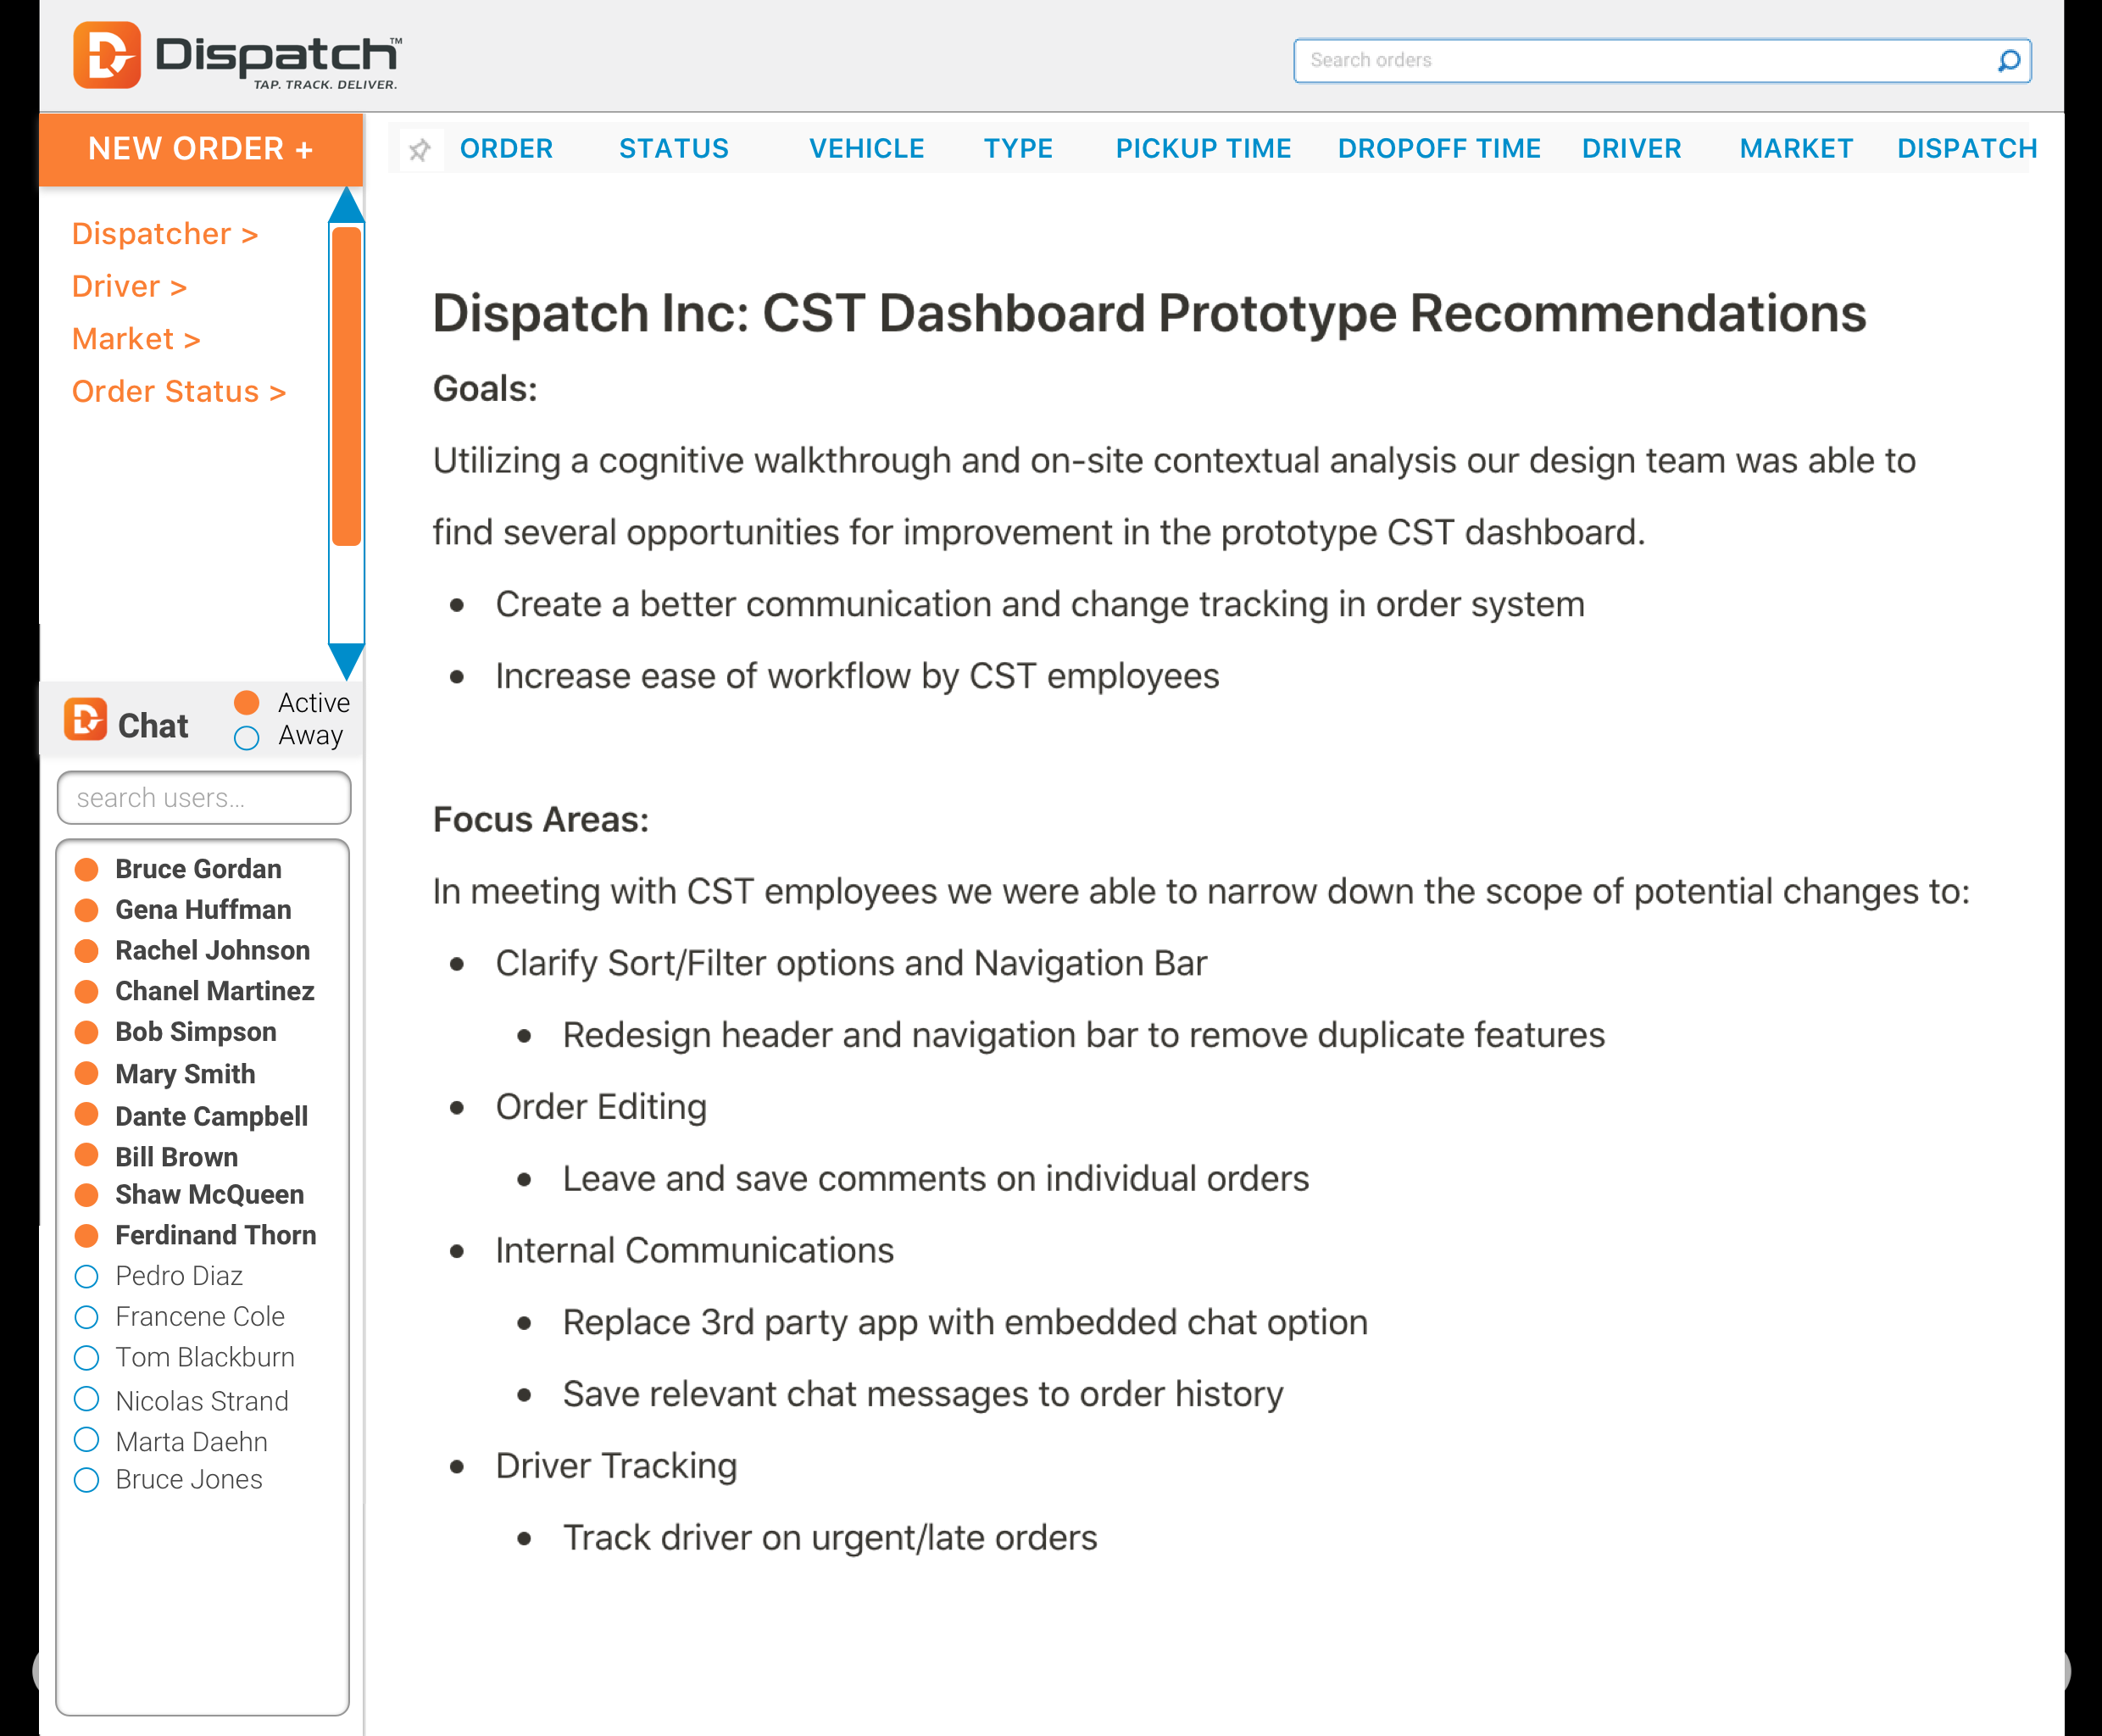 DISPATCH PROTOTYPE INTRODUCTION@2x.png